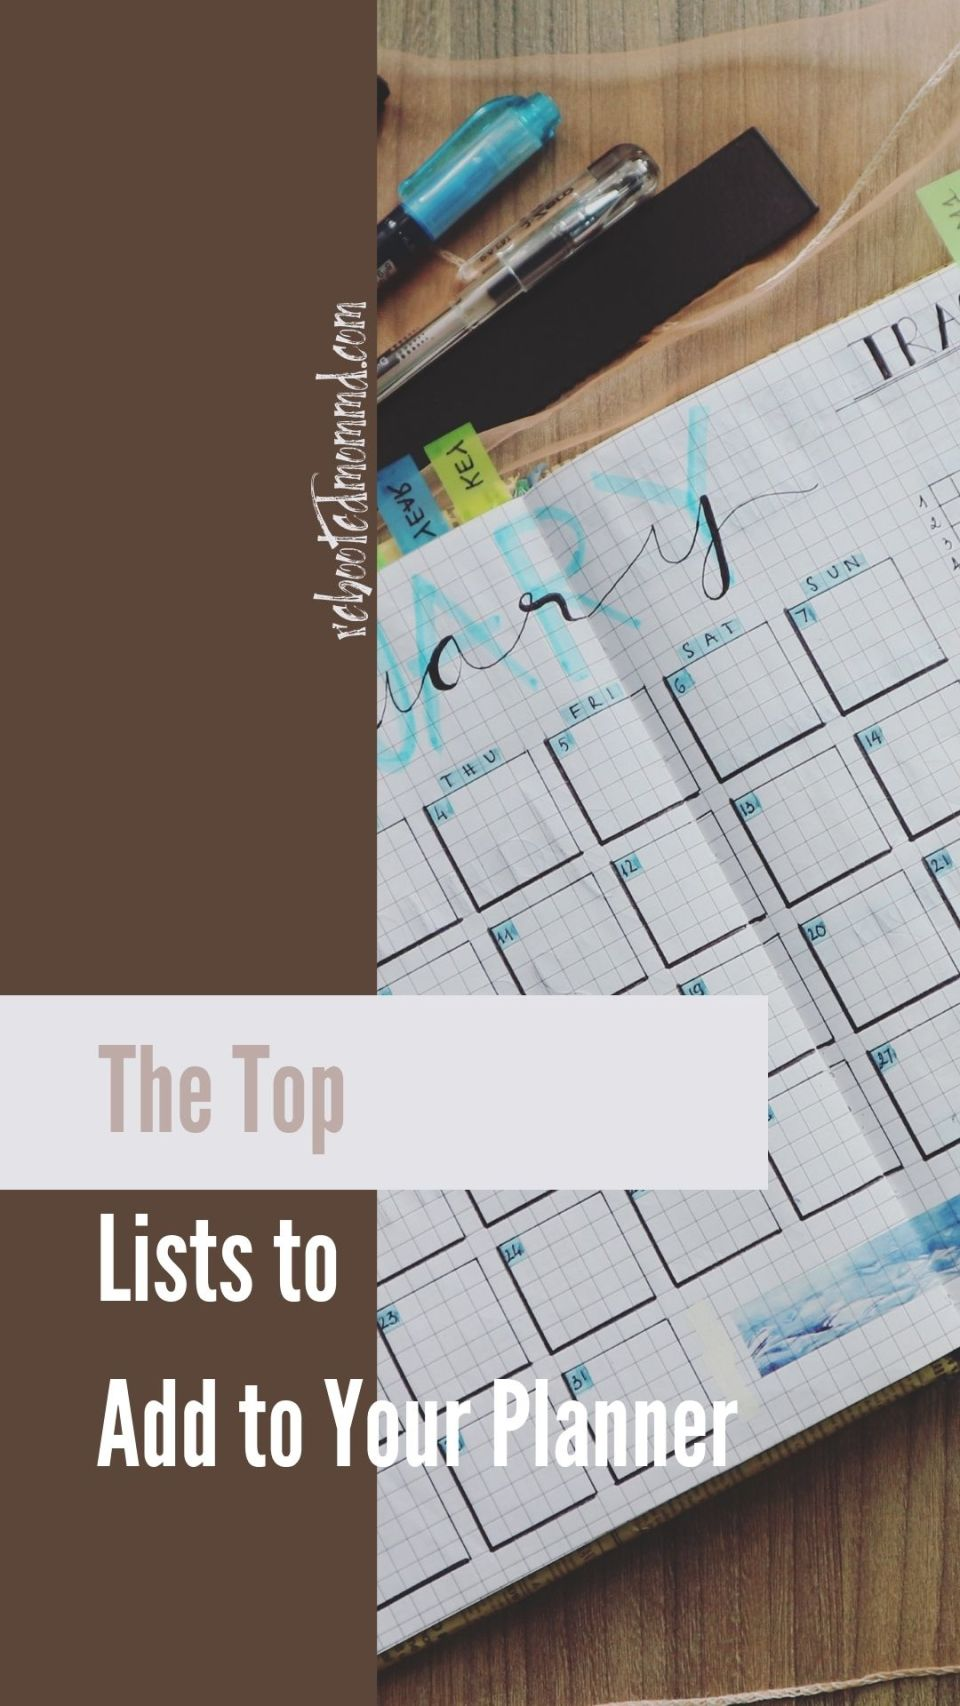 The Top Lists to Add to Your Planner